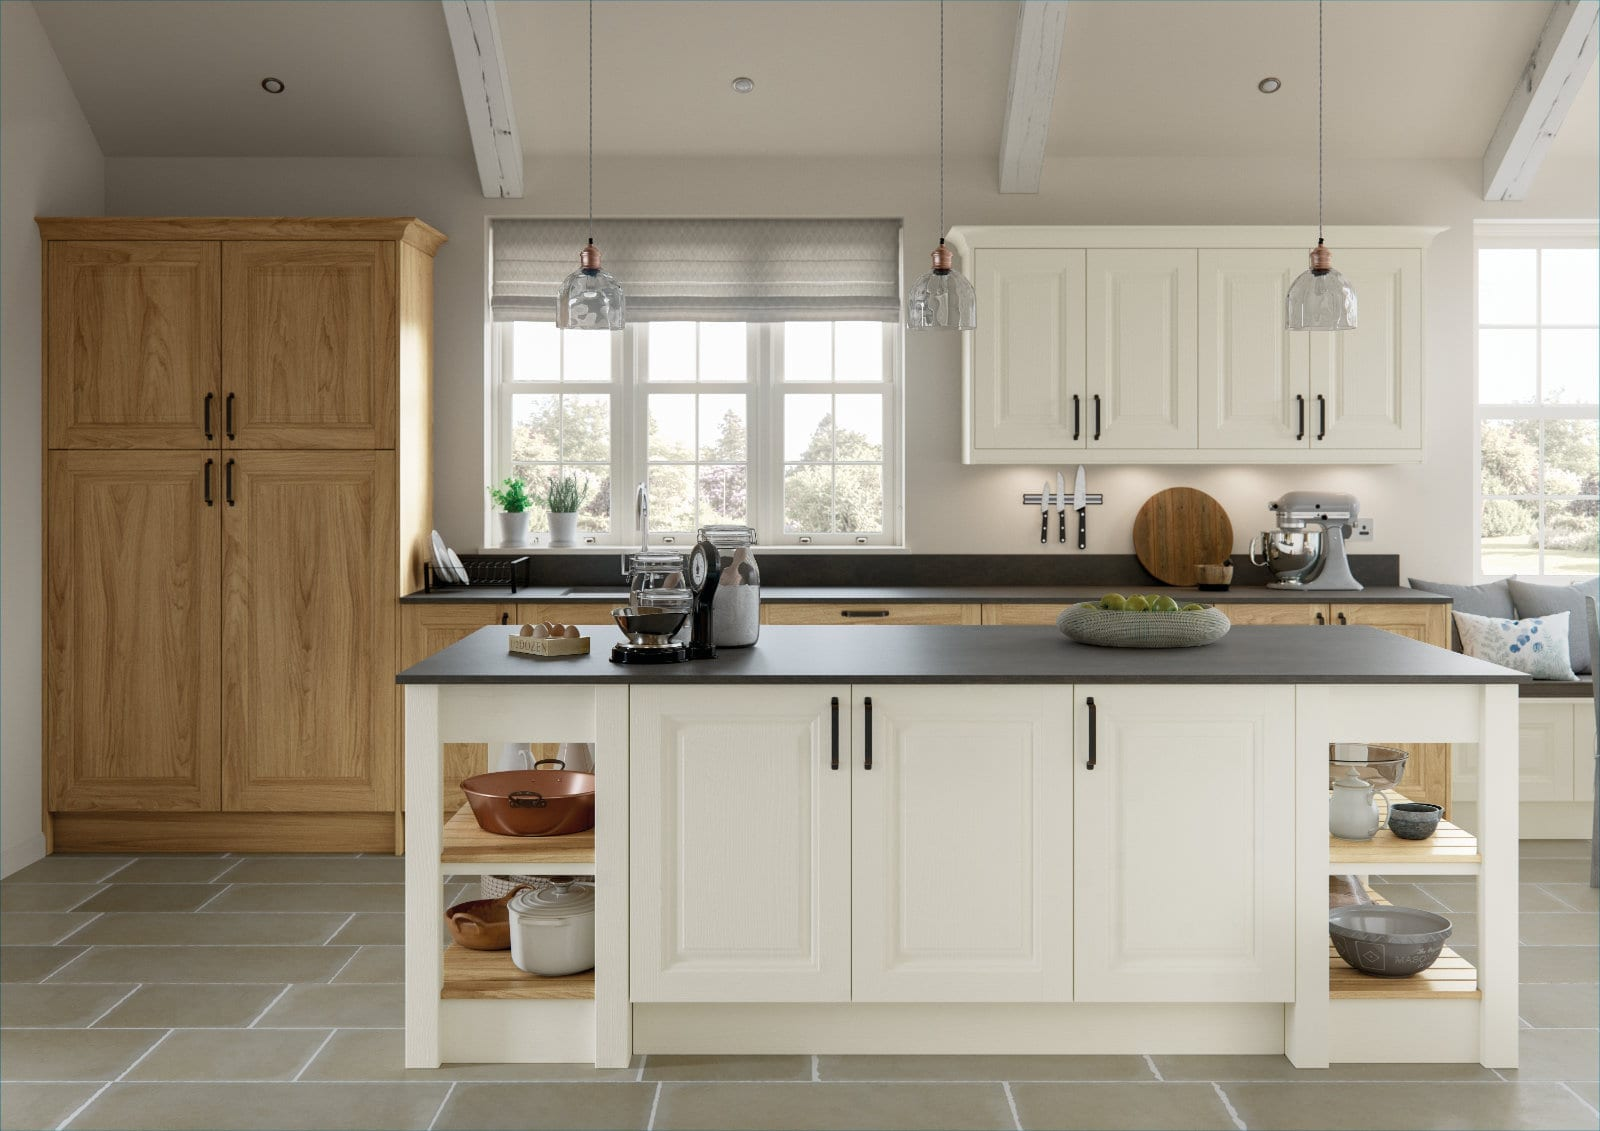 Alku White Wood Open Plan Shaker Kitchen With Island 2   Unique Bedrooms Direct   Dunstable